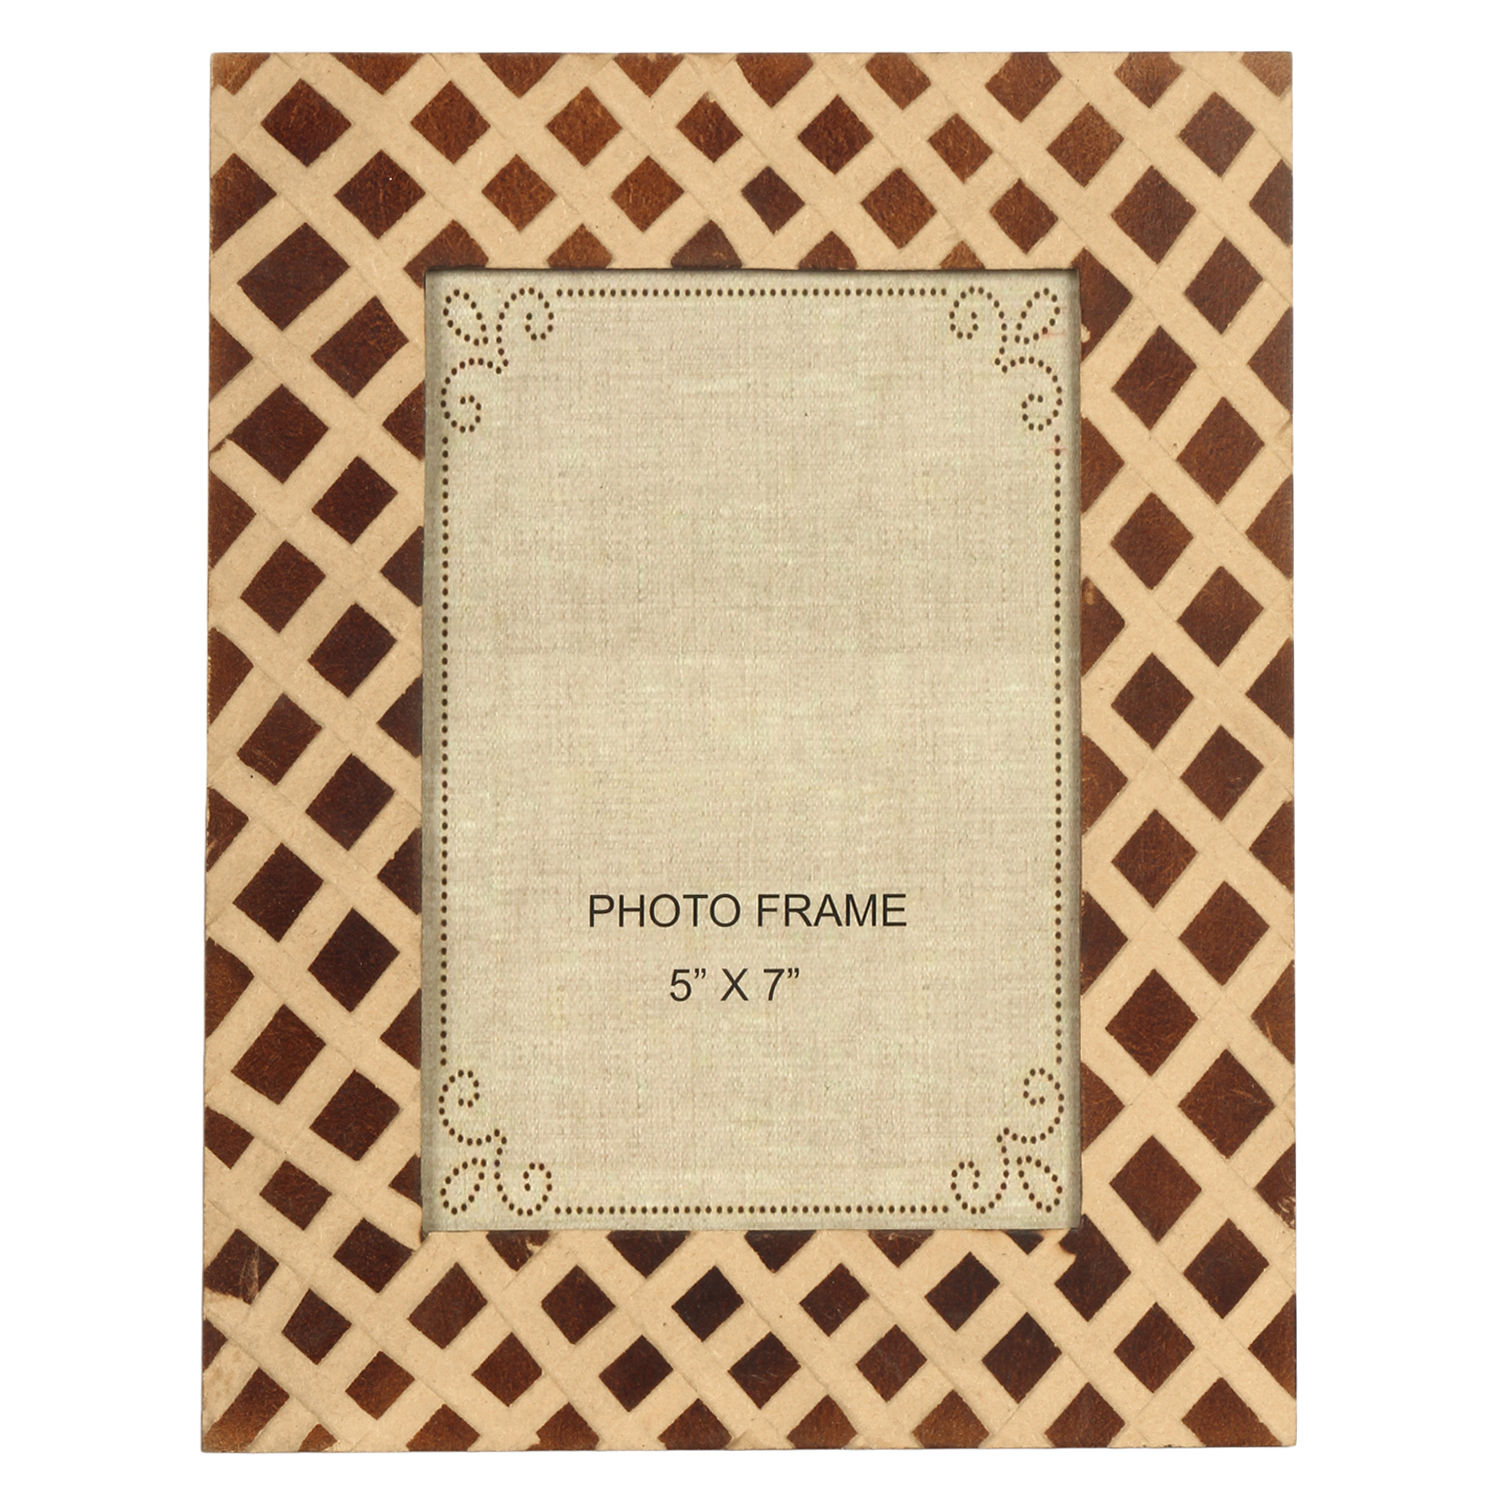 Decor Mart Natural Brown Colour Wood Photo Frame For 7 X 5 Inch Photo